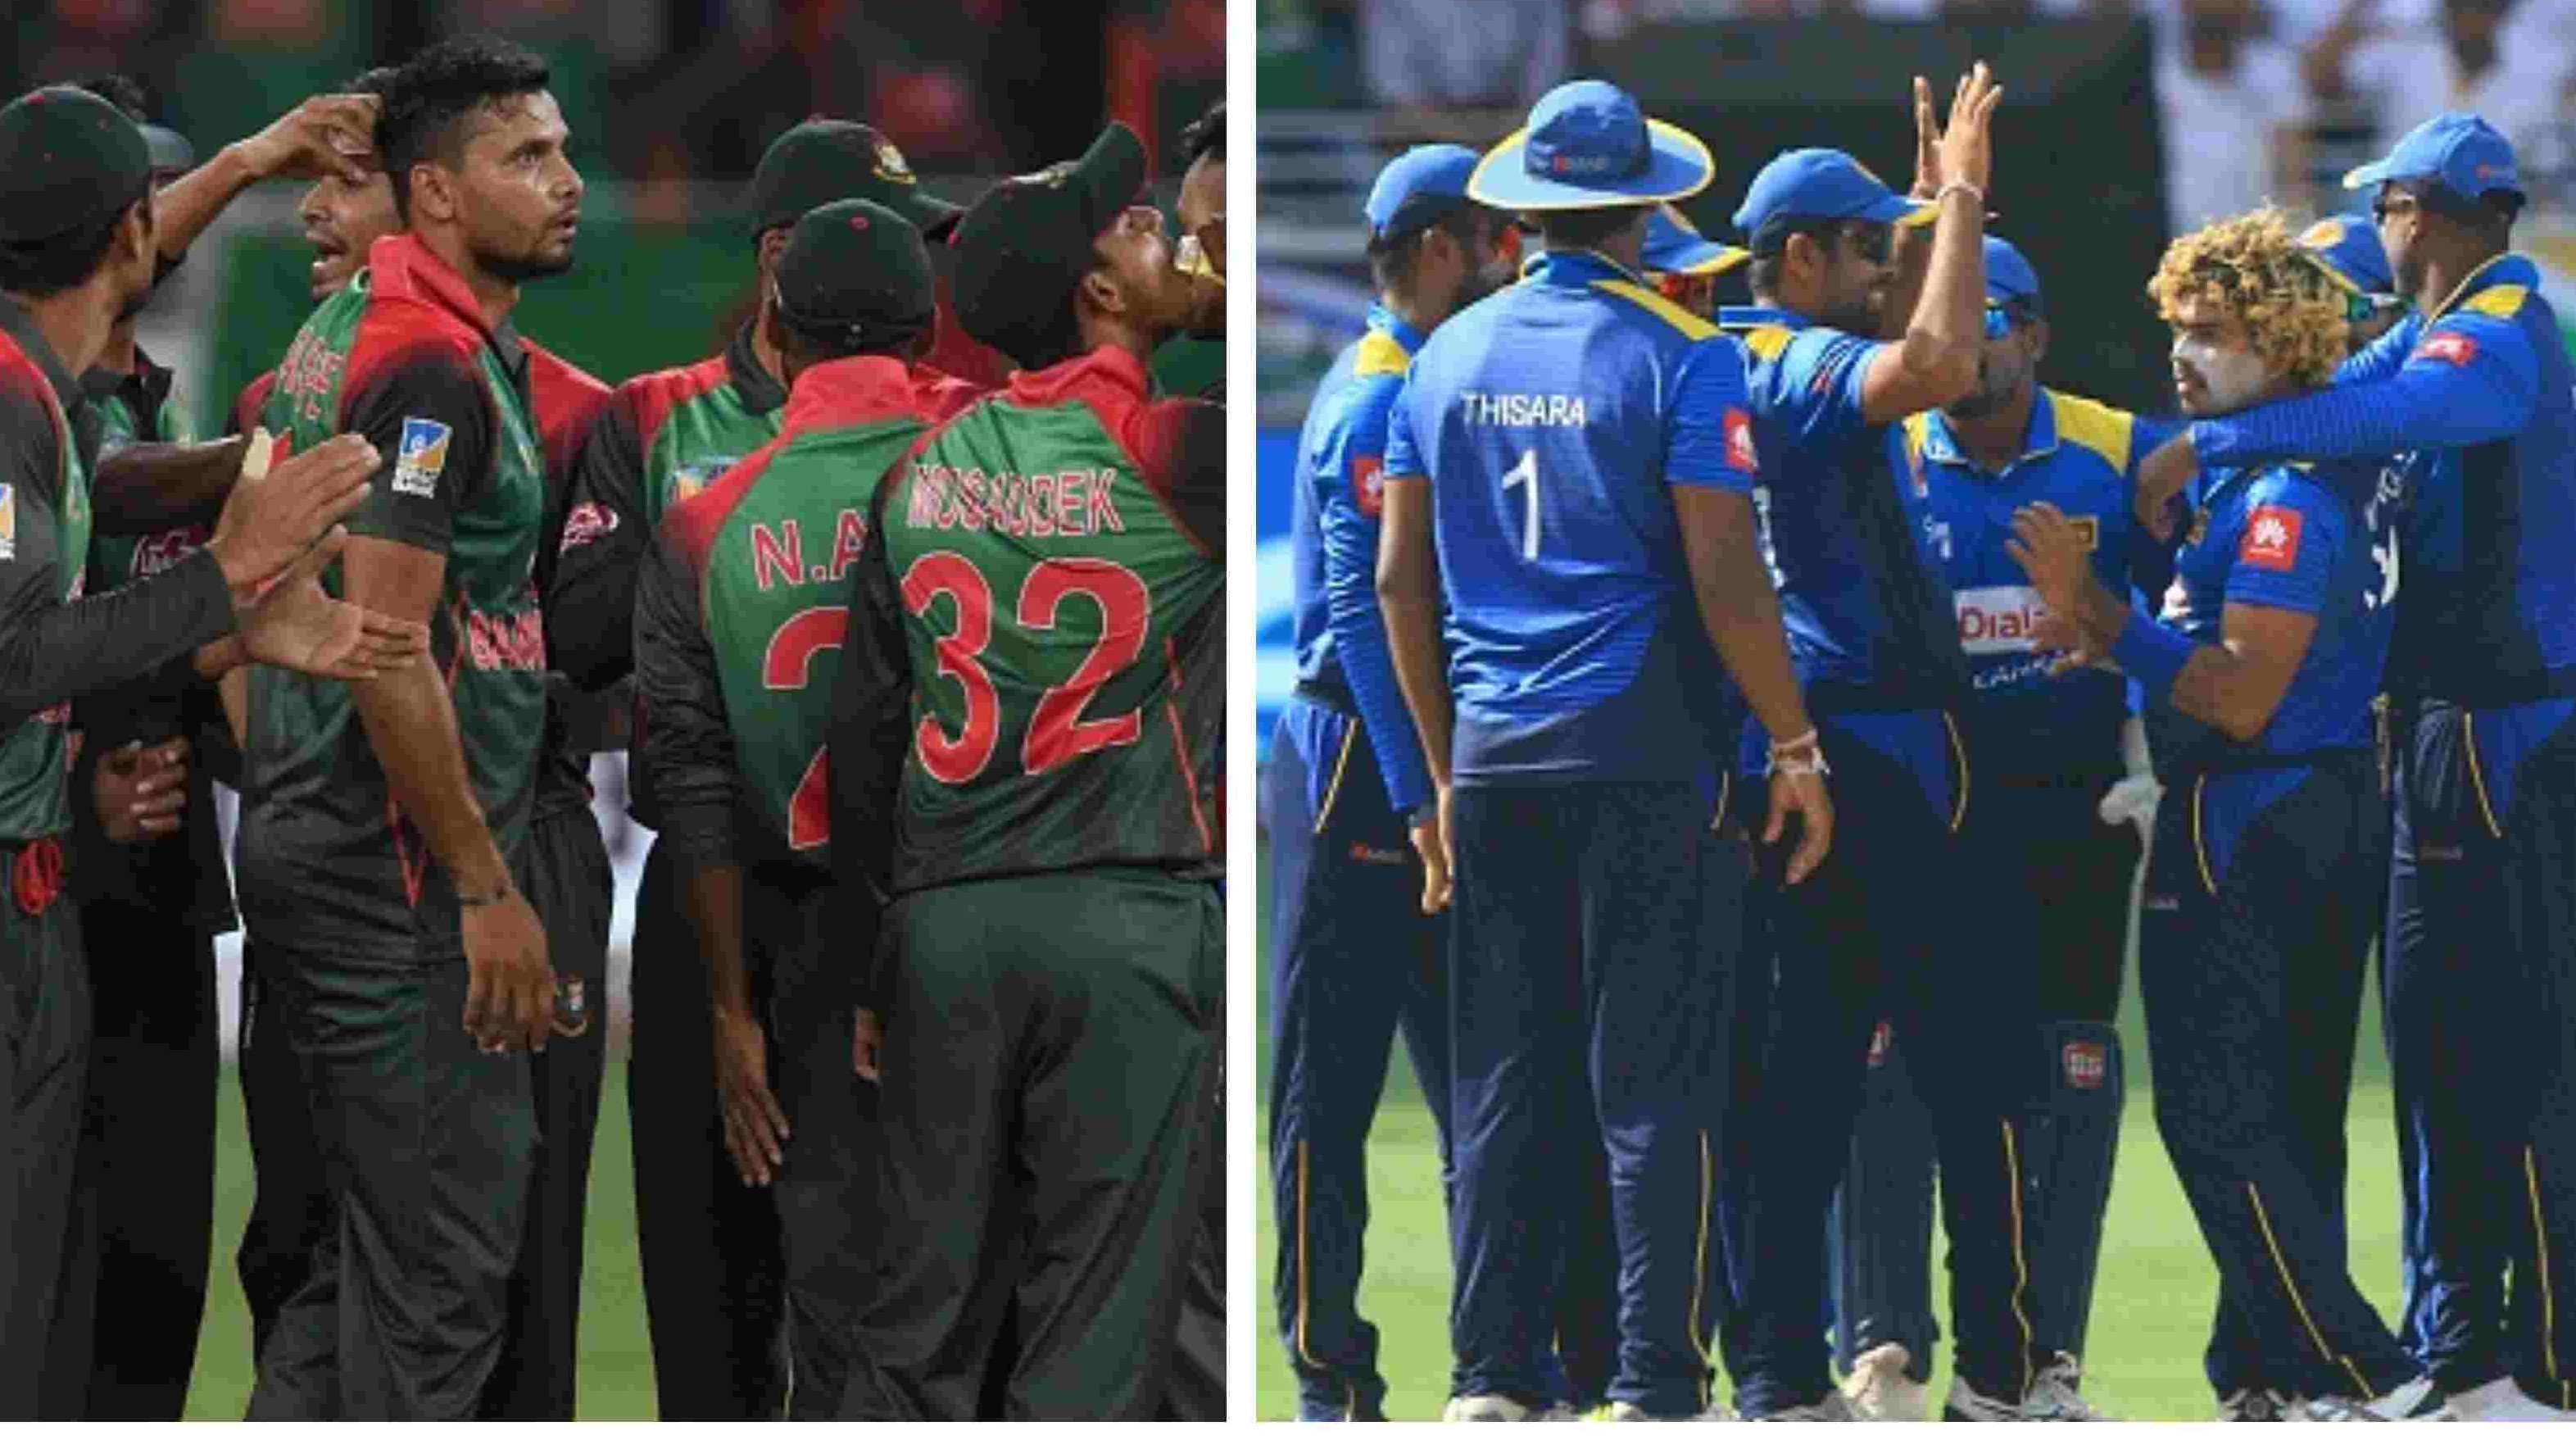 Sri Lanka, Bangladesh fail to secure direct berths for the next T20 World Cup